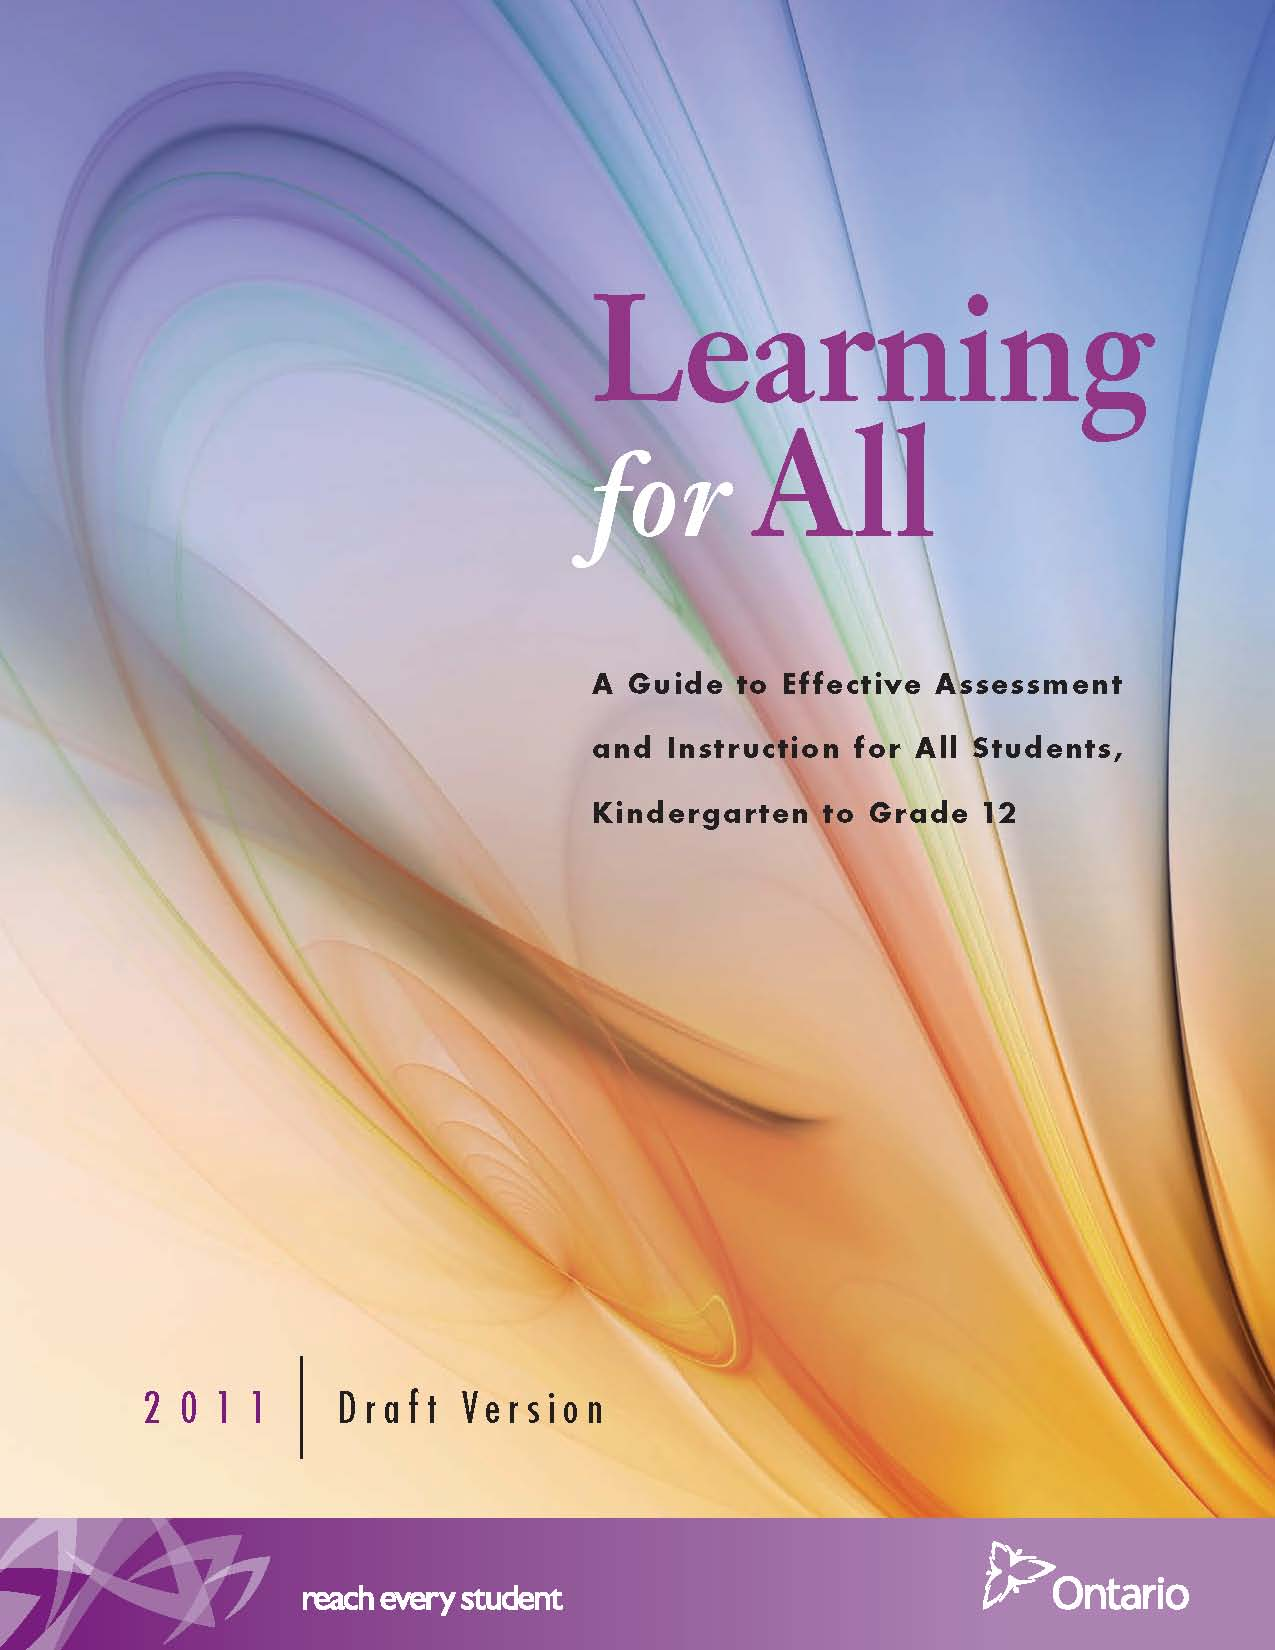 learning and assessment in practice essay When students actively participate in assessing their learning by interpreting their   be built into teachers' planning as a part of everyday classroom practice.